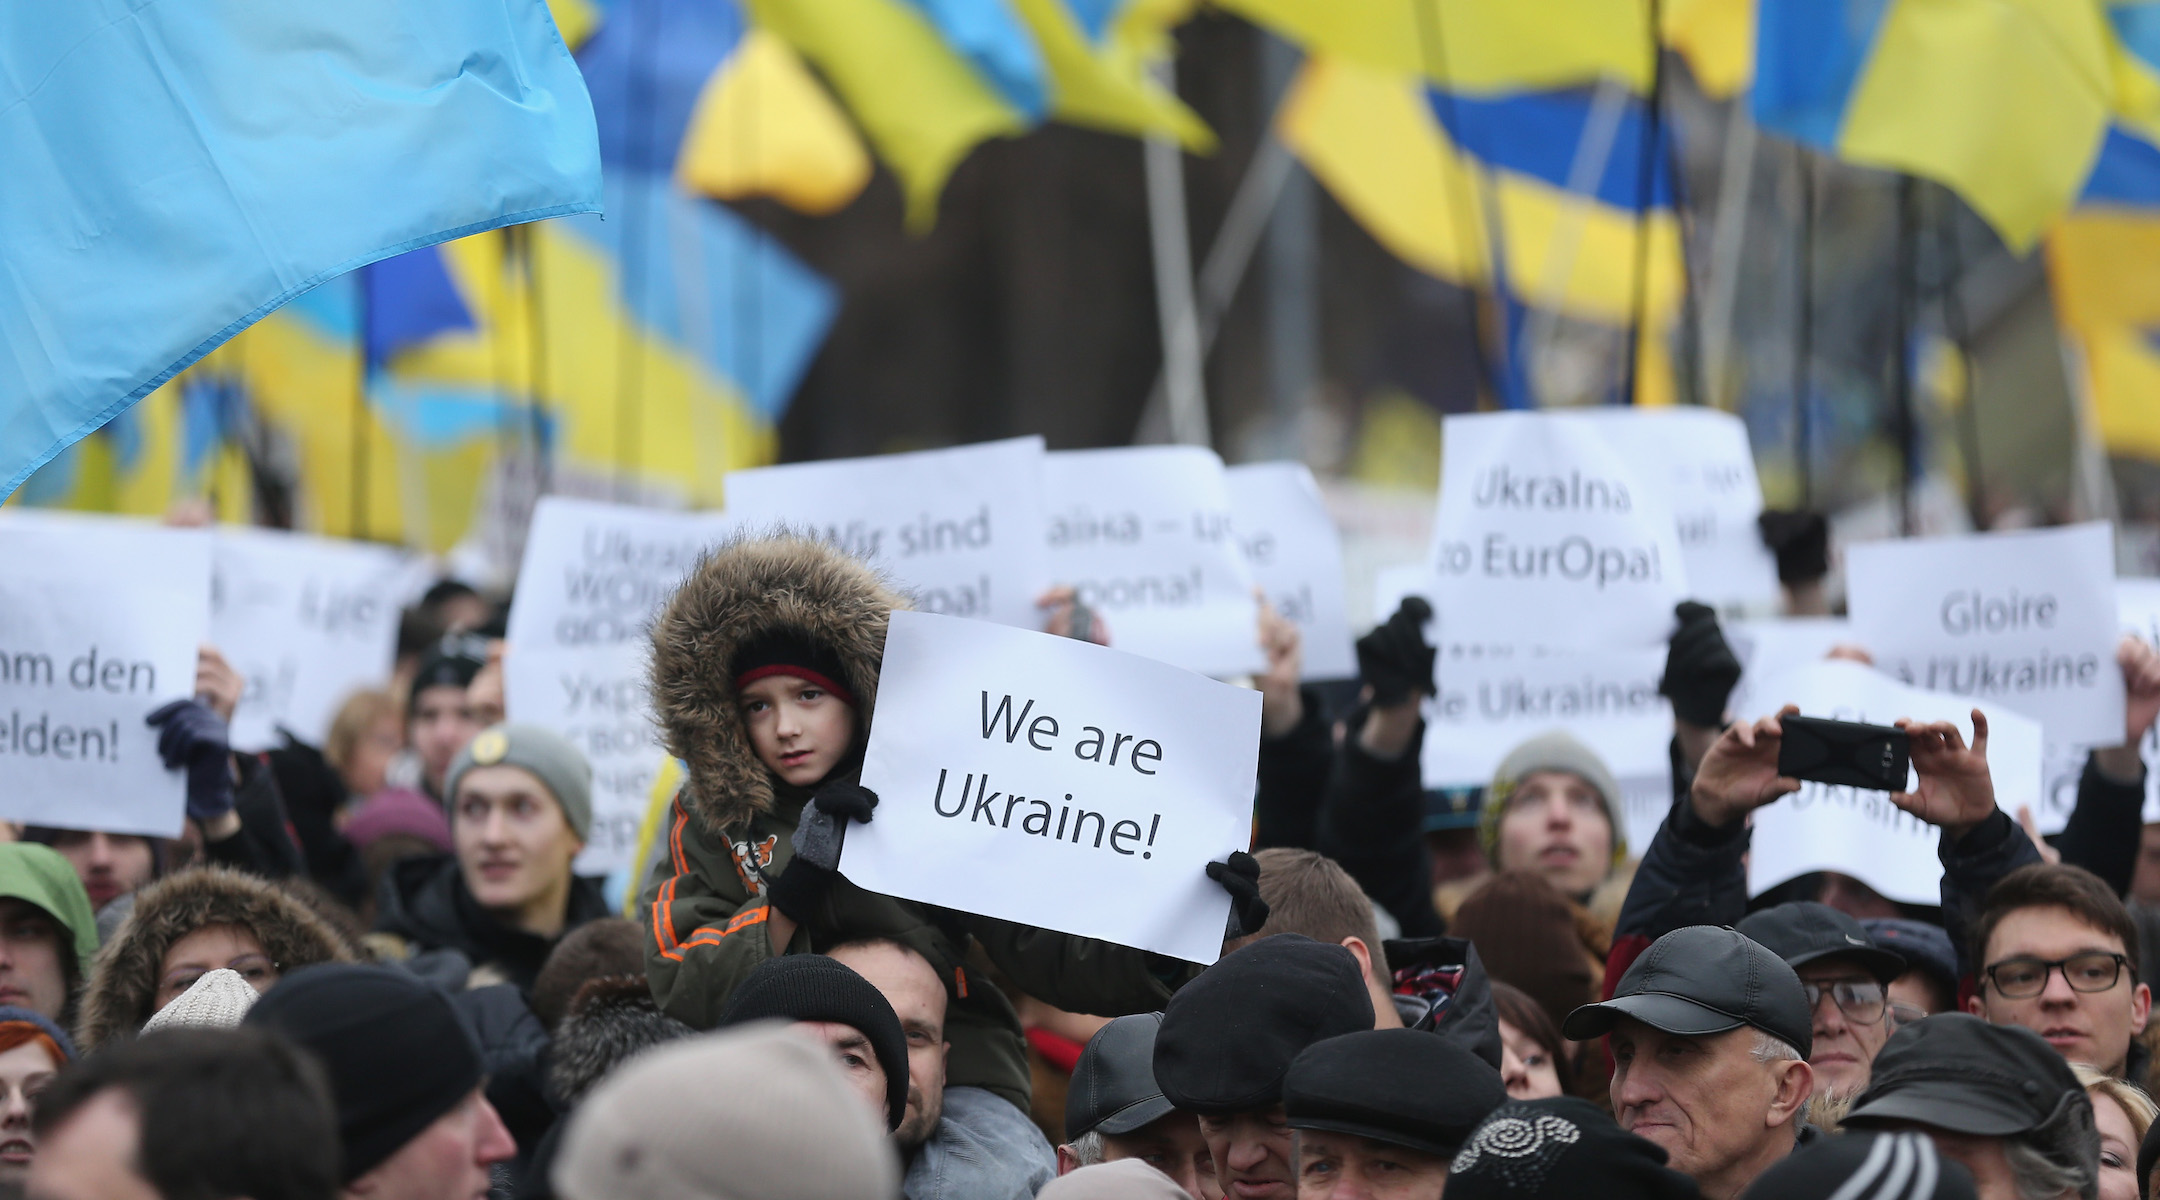 Participants in the March of Dignity gather in Kiev's Maidan Independence Square for ceremonies marking the first anniversary of the Maidan Revolution that led to the ouster of Ukrainian President Viktor Yanukovic, Feb. 22, 2015. (Sean Gallup/Getty Images)